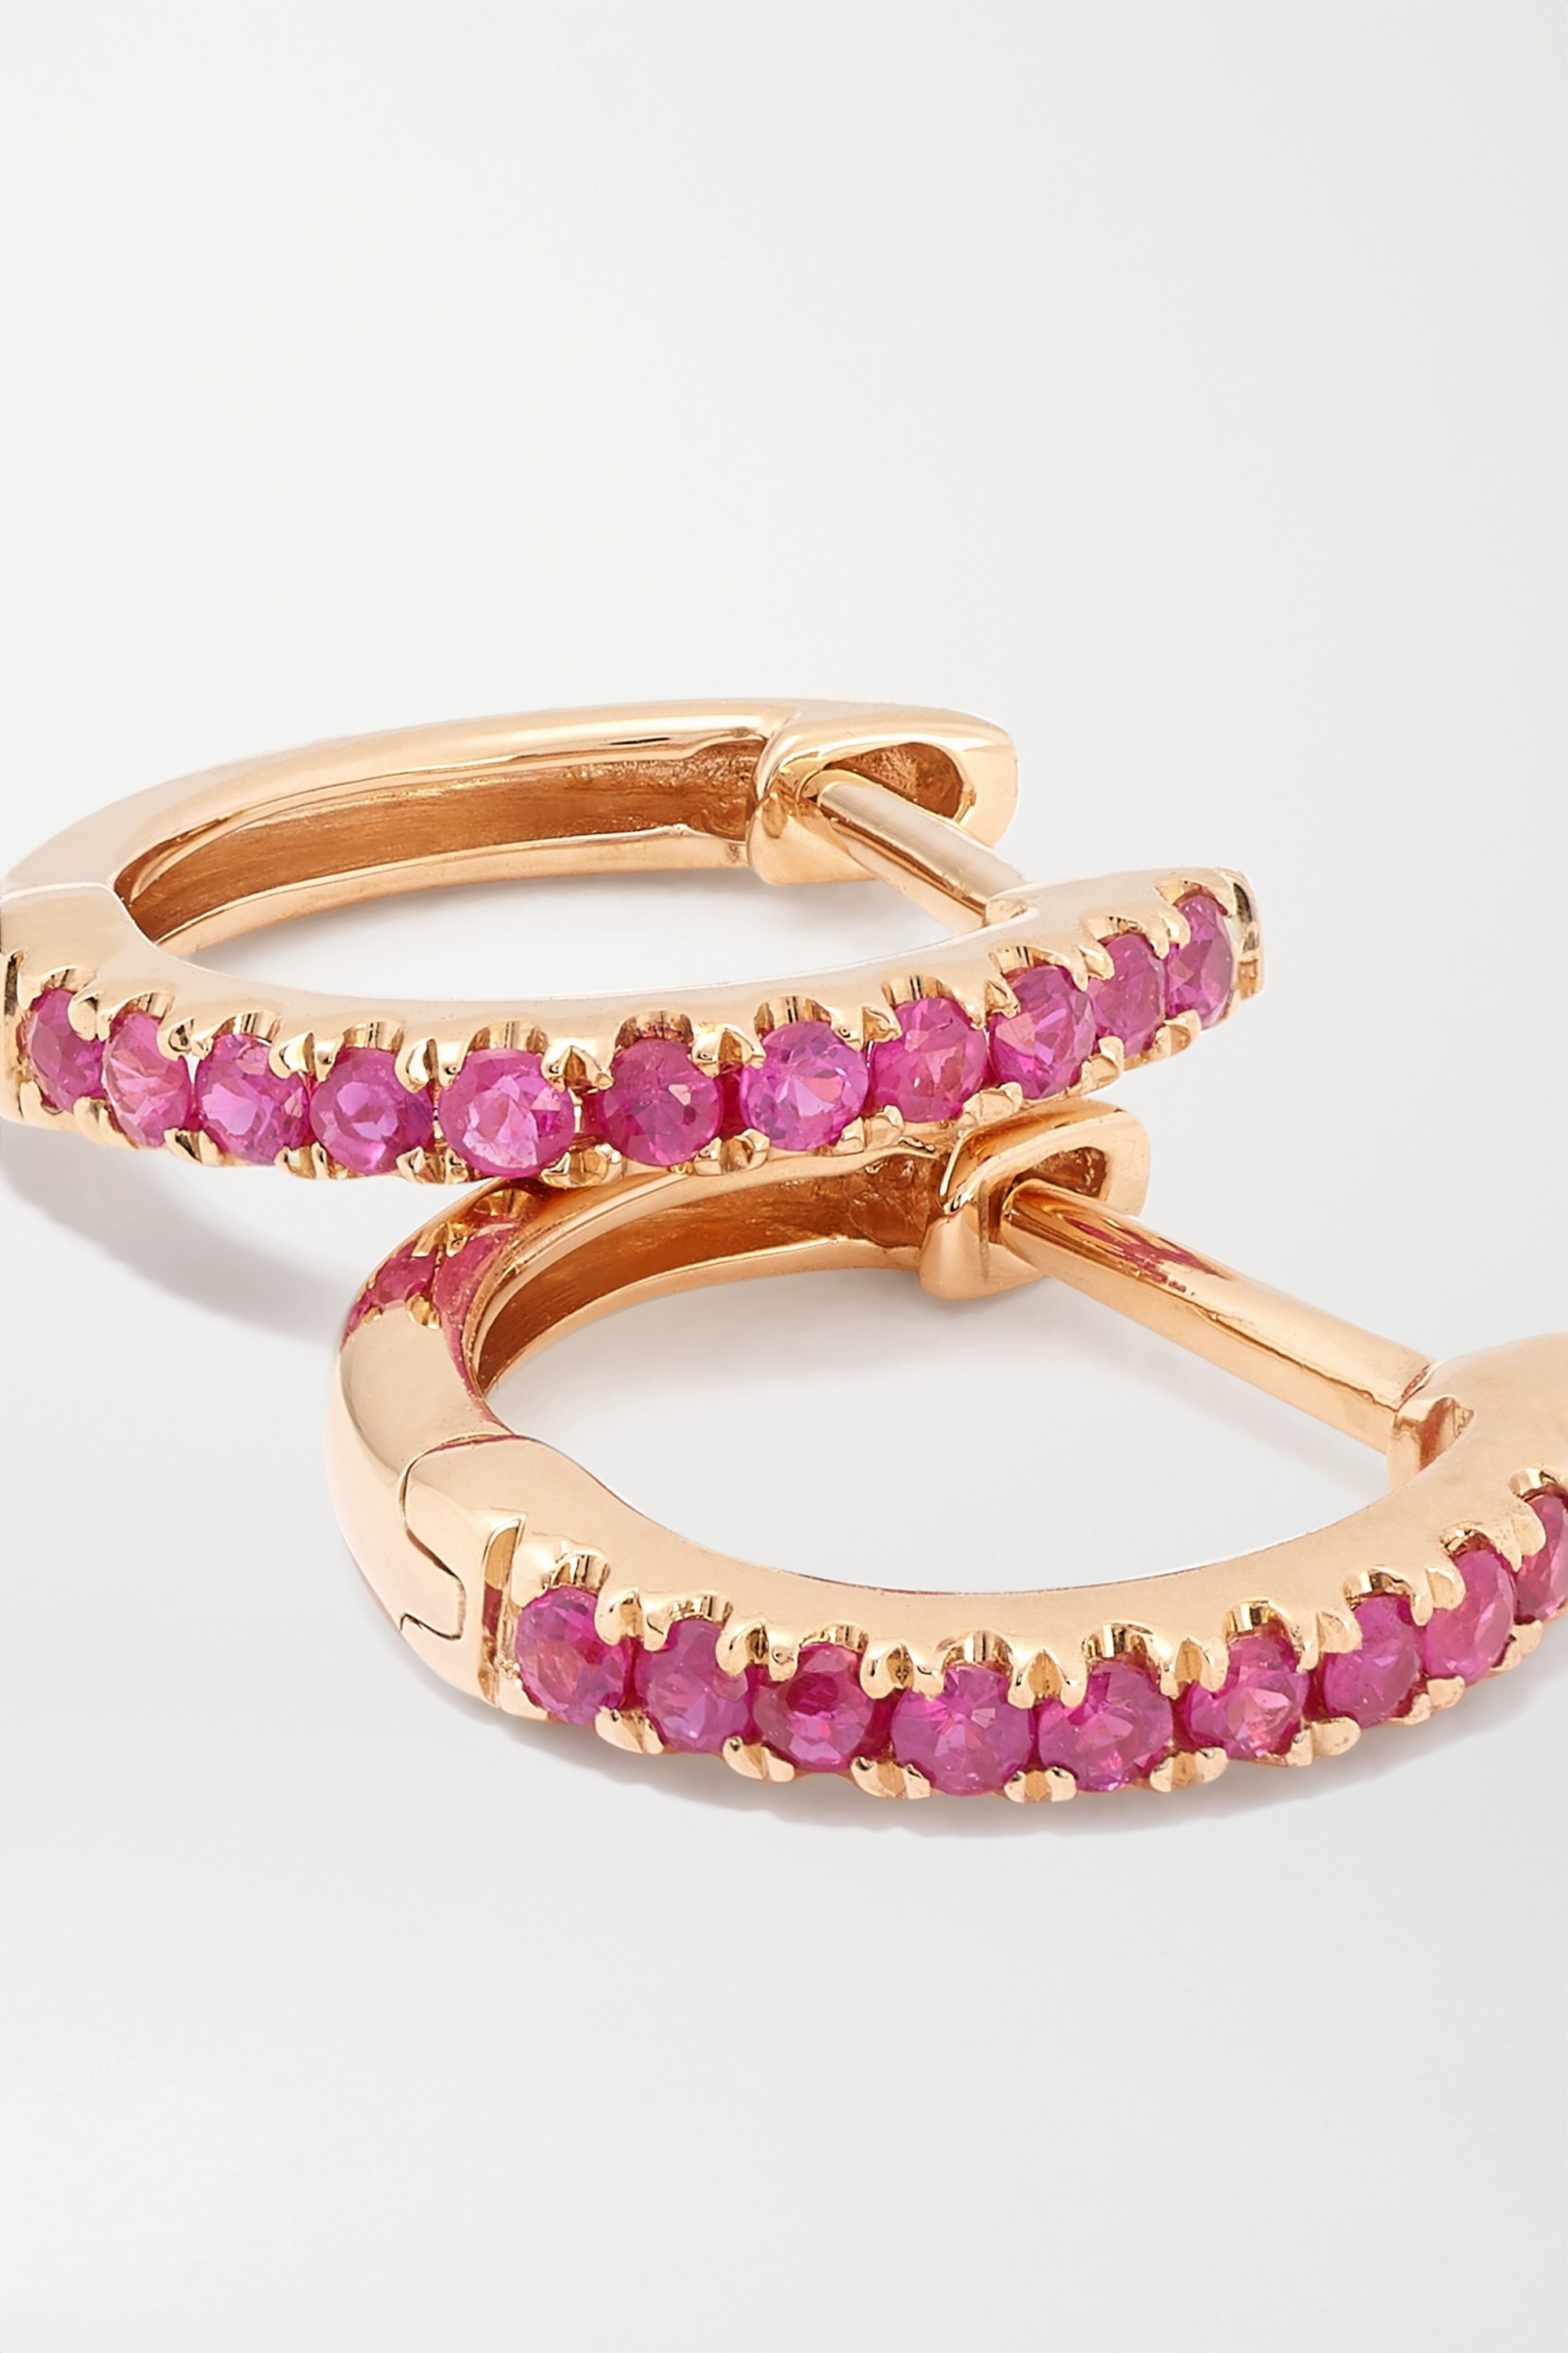 Anita Ko Huggies 18-karat rose gold ruby earrings